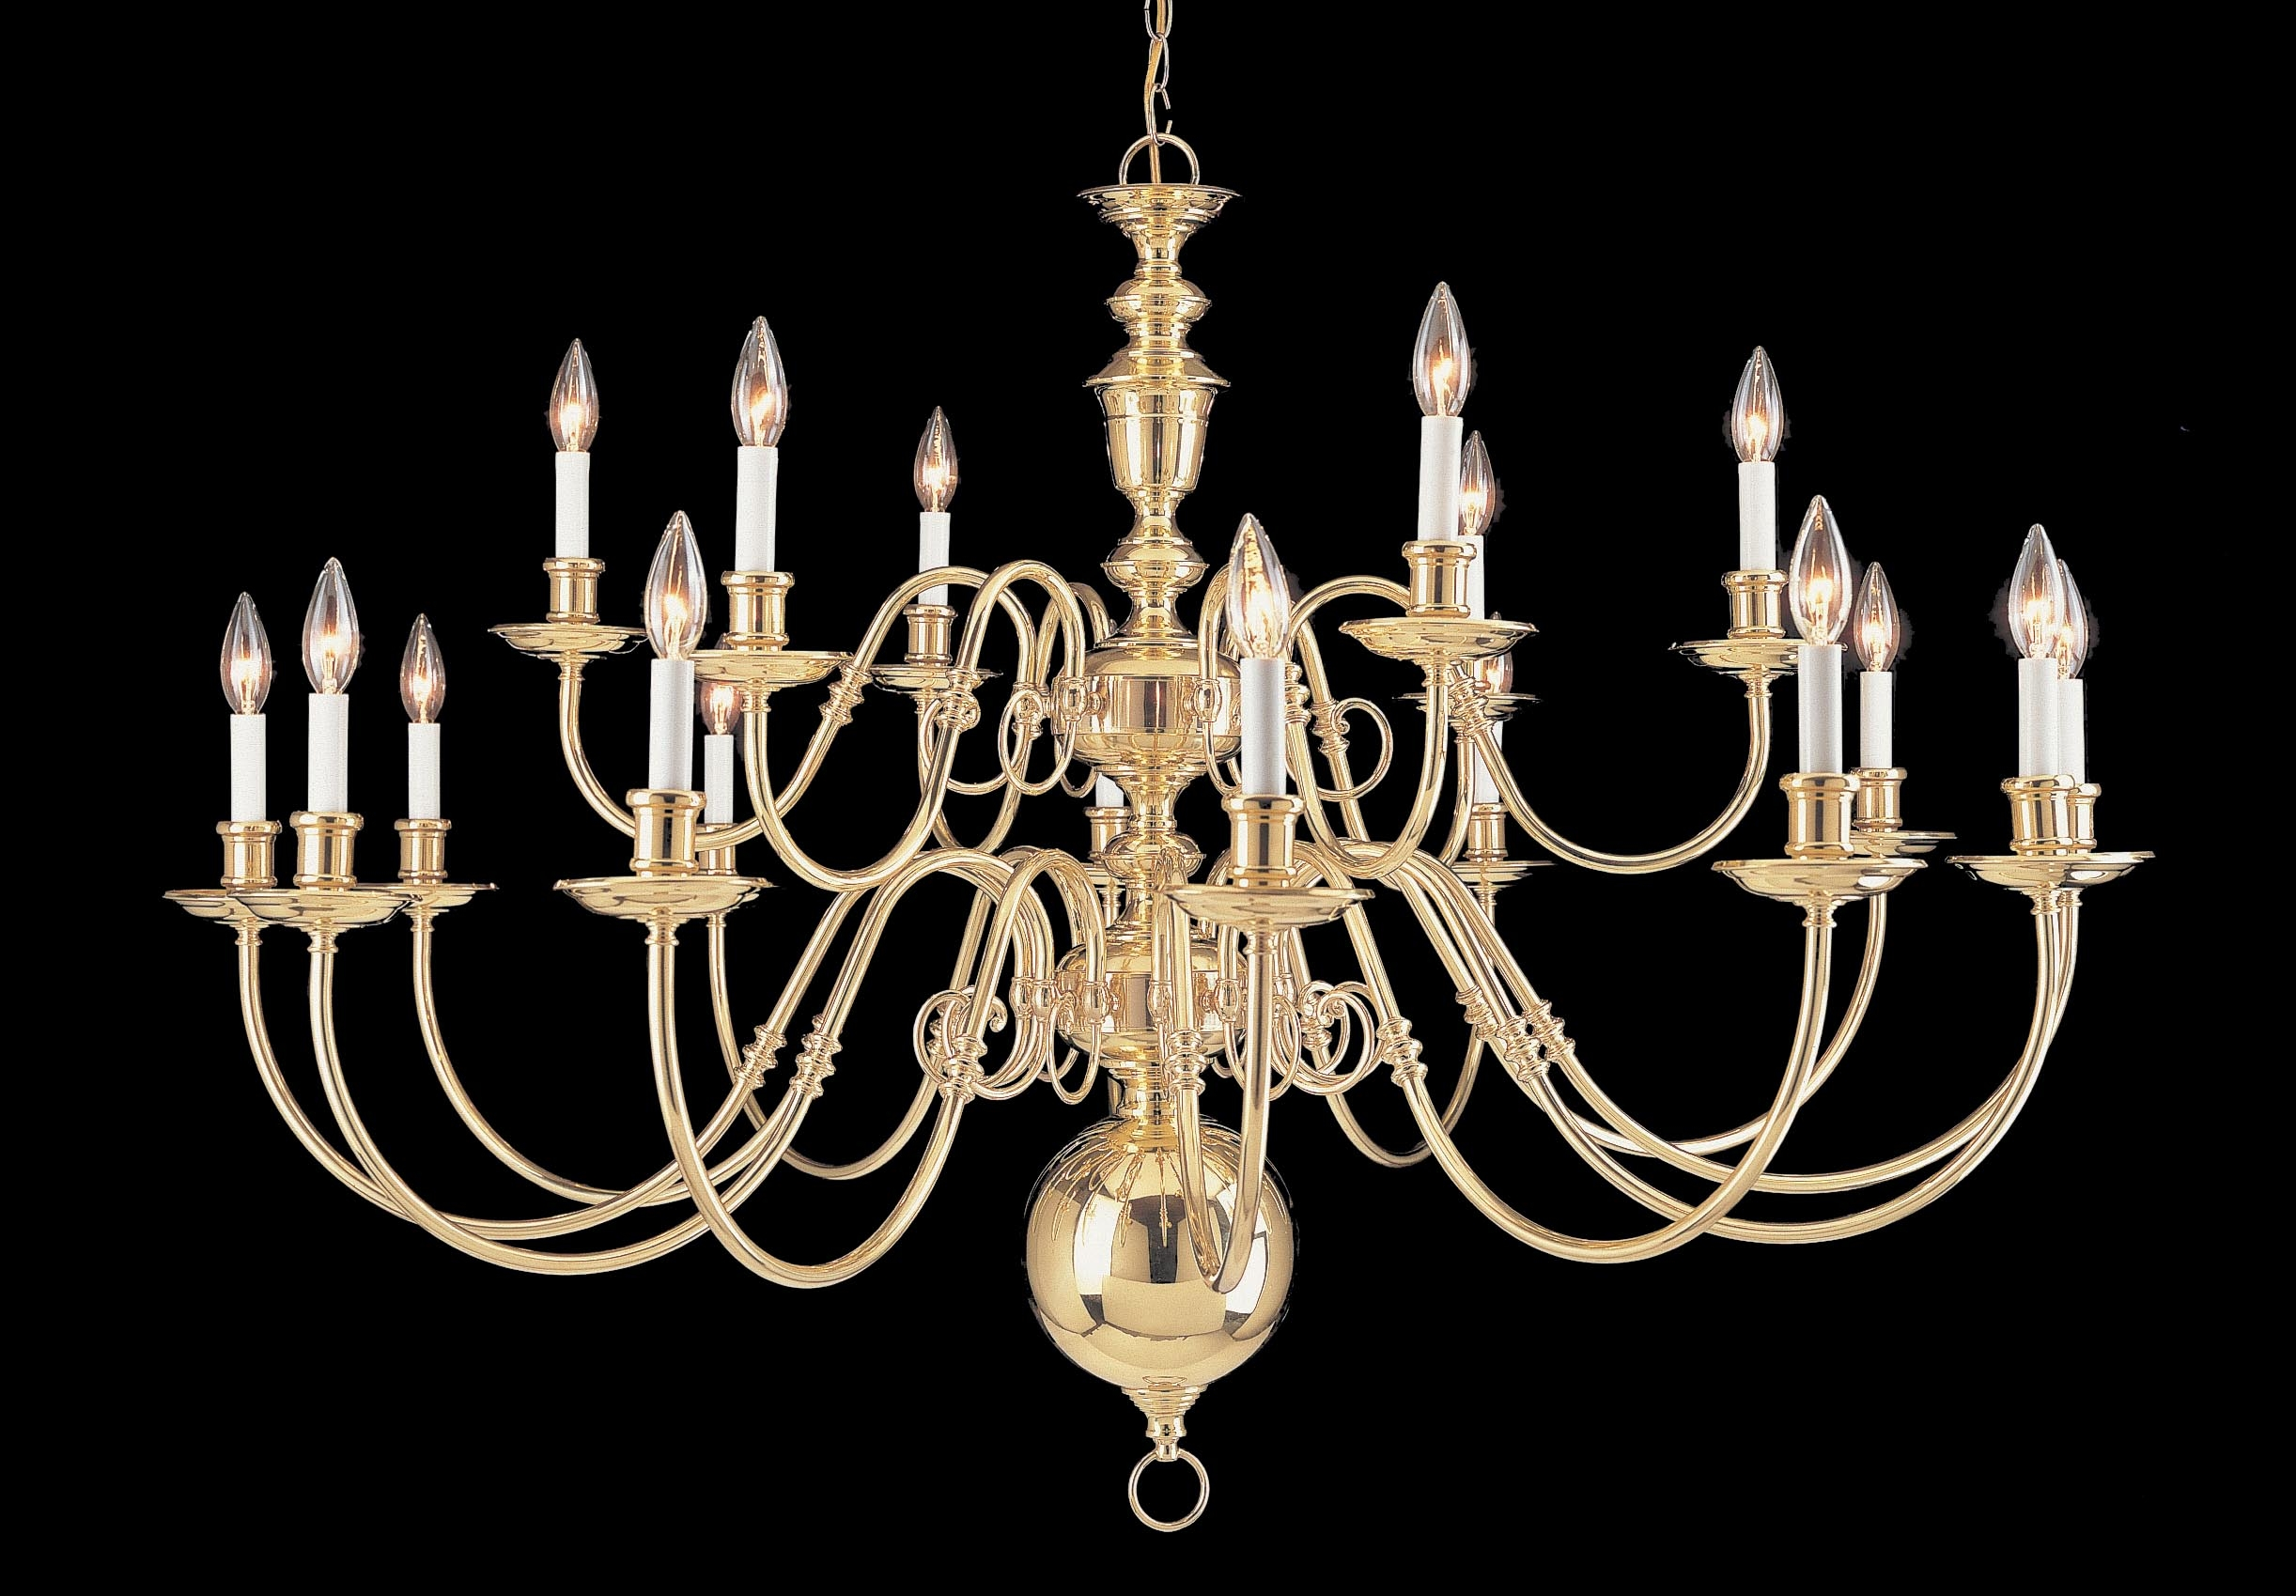 Largelighting Brassbronze Chandeliers With Large Bronze Chandelier (Image 10 of 15)